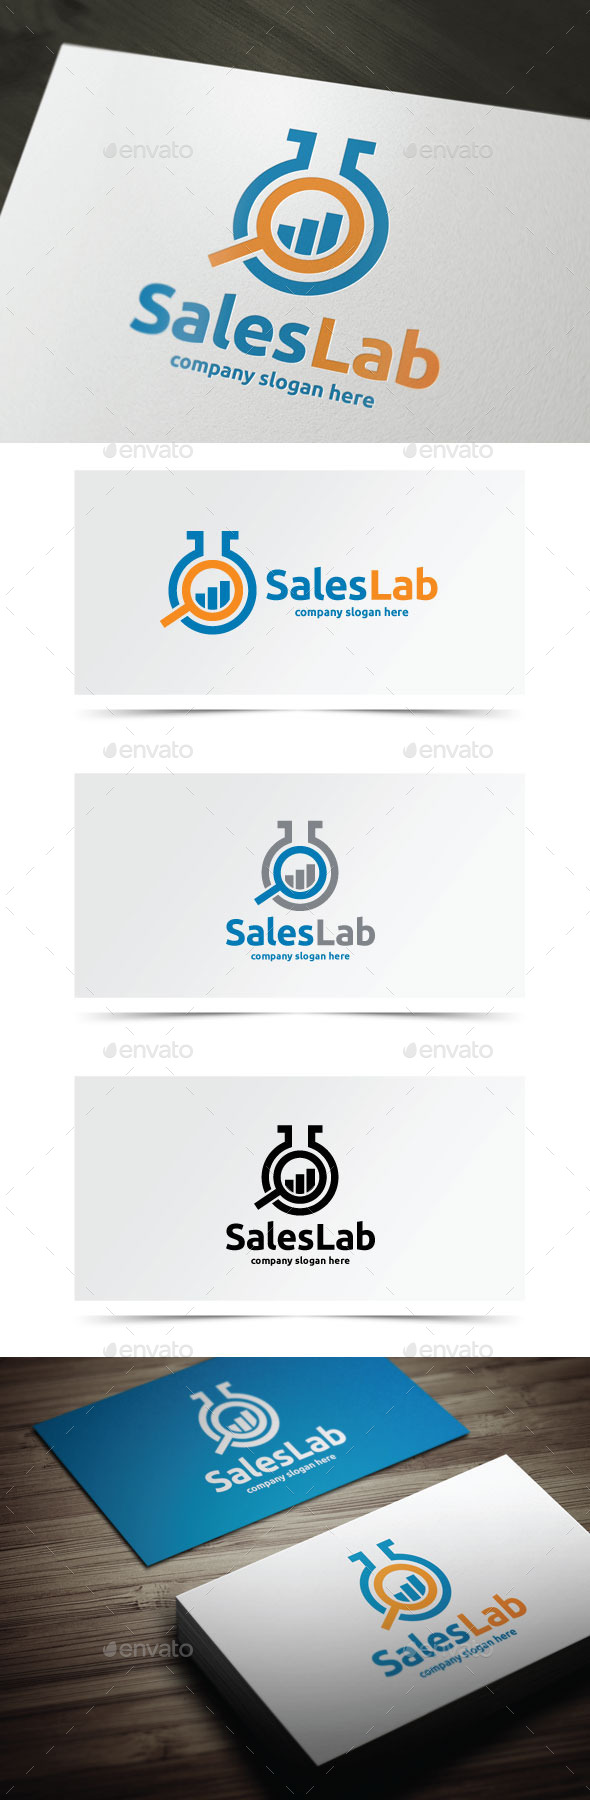 GraphicRiver Sales Lab 8998820